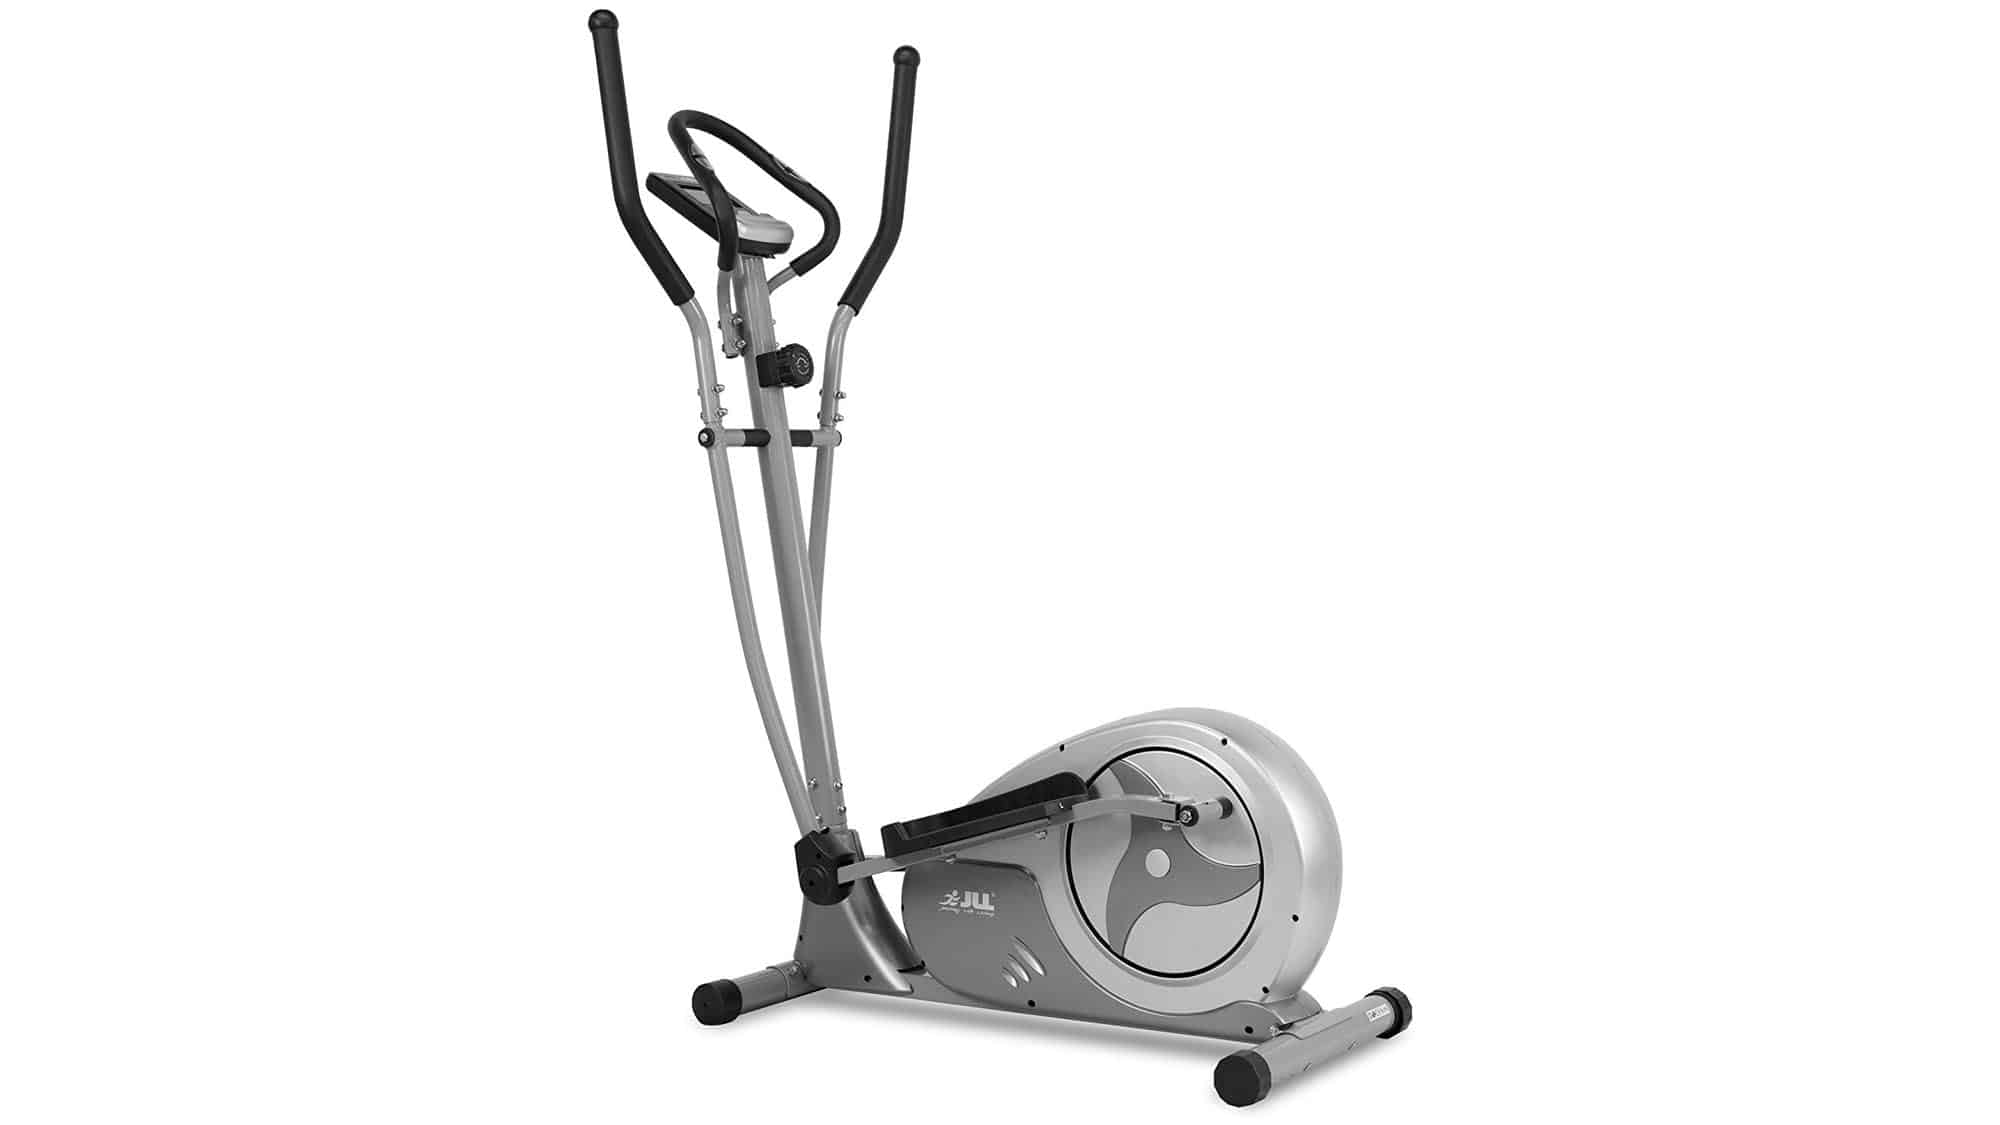 JLL CT300 Elliptical Cross Trainer Review